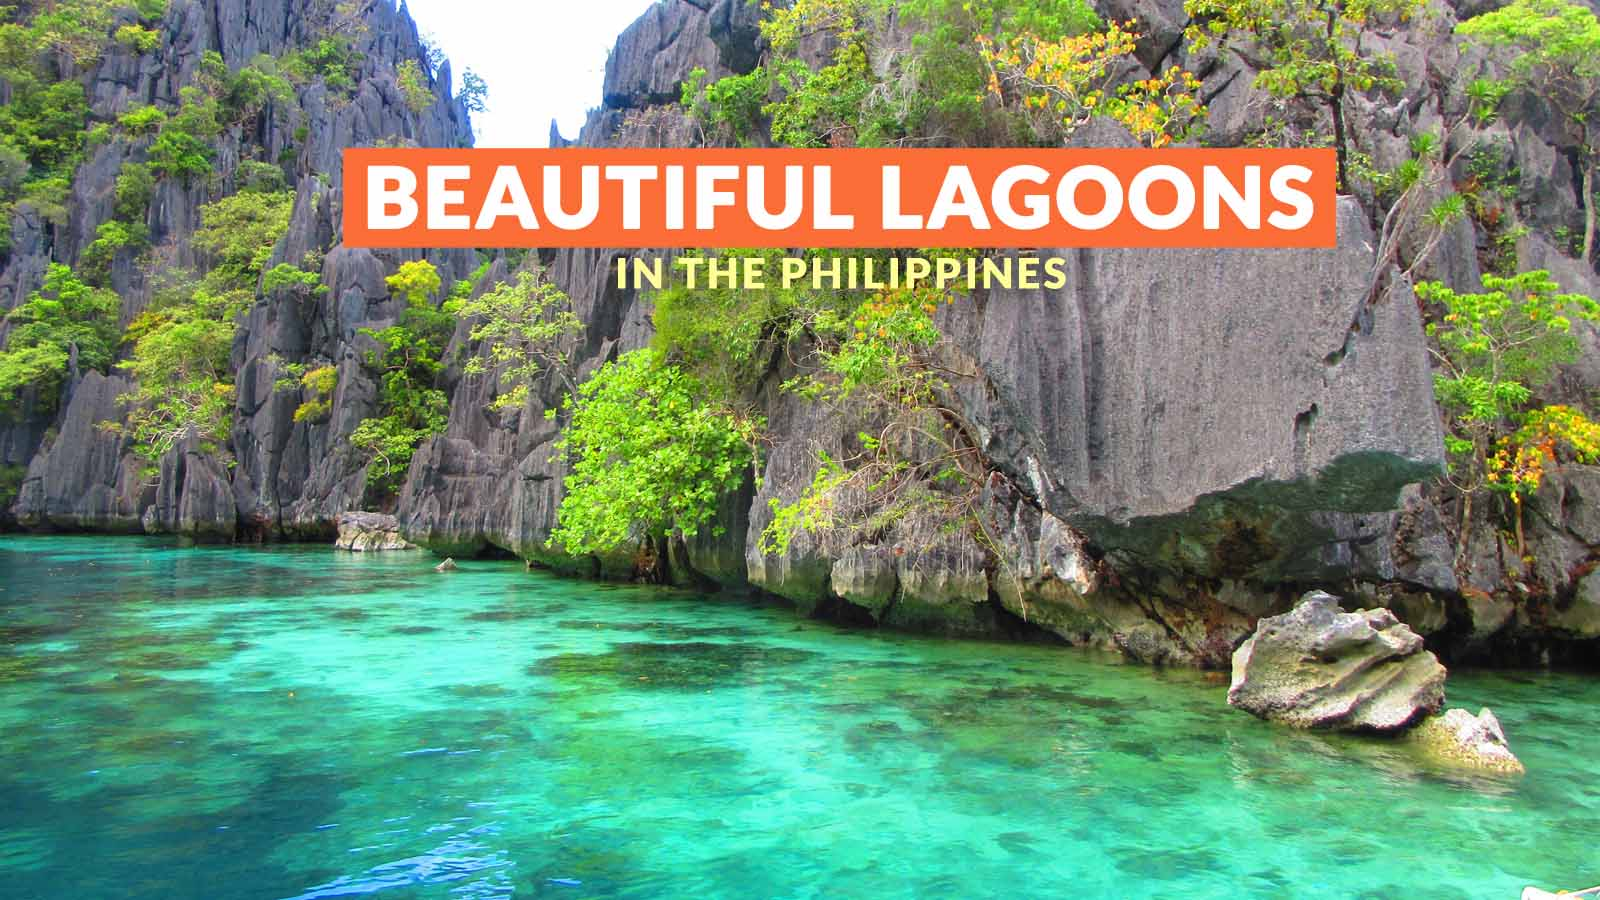 MOST BEAUTIFUL LAGOONS IN THE PHILIPPINES - Philippine Beach Guide